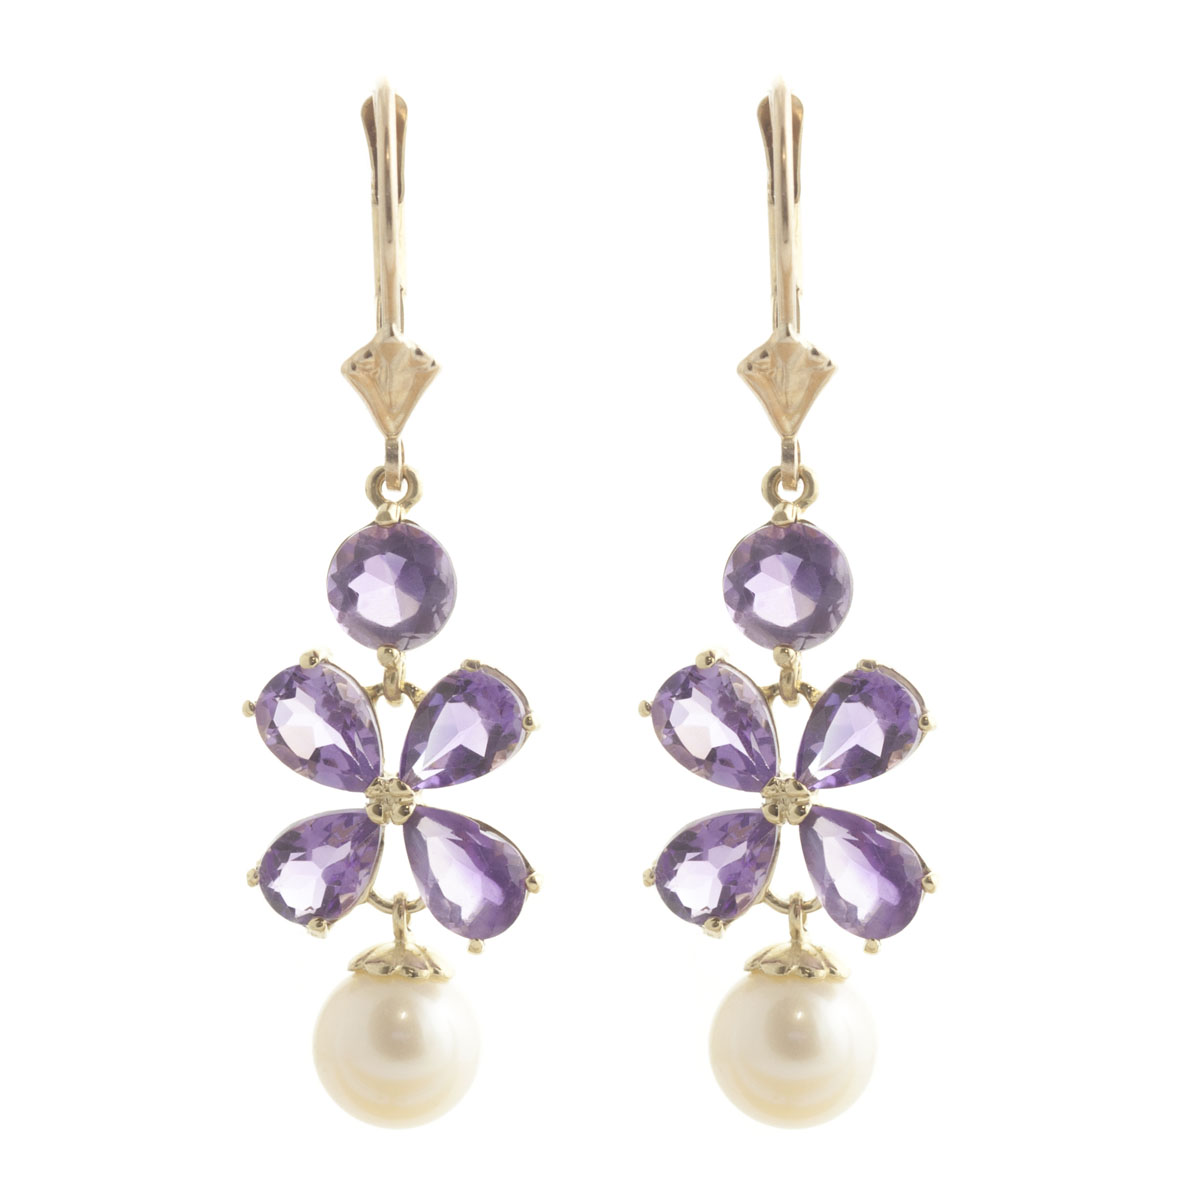 Amethyst & Pearl Blossom Drop Earrings in 9ct Gold